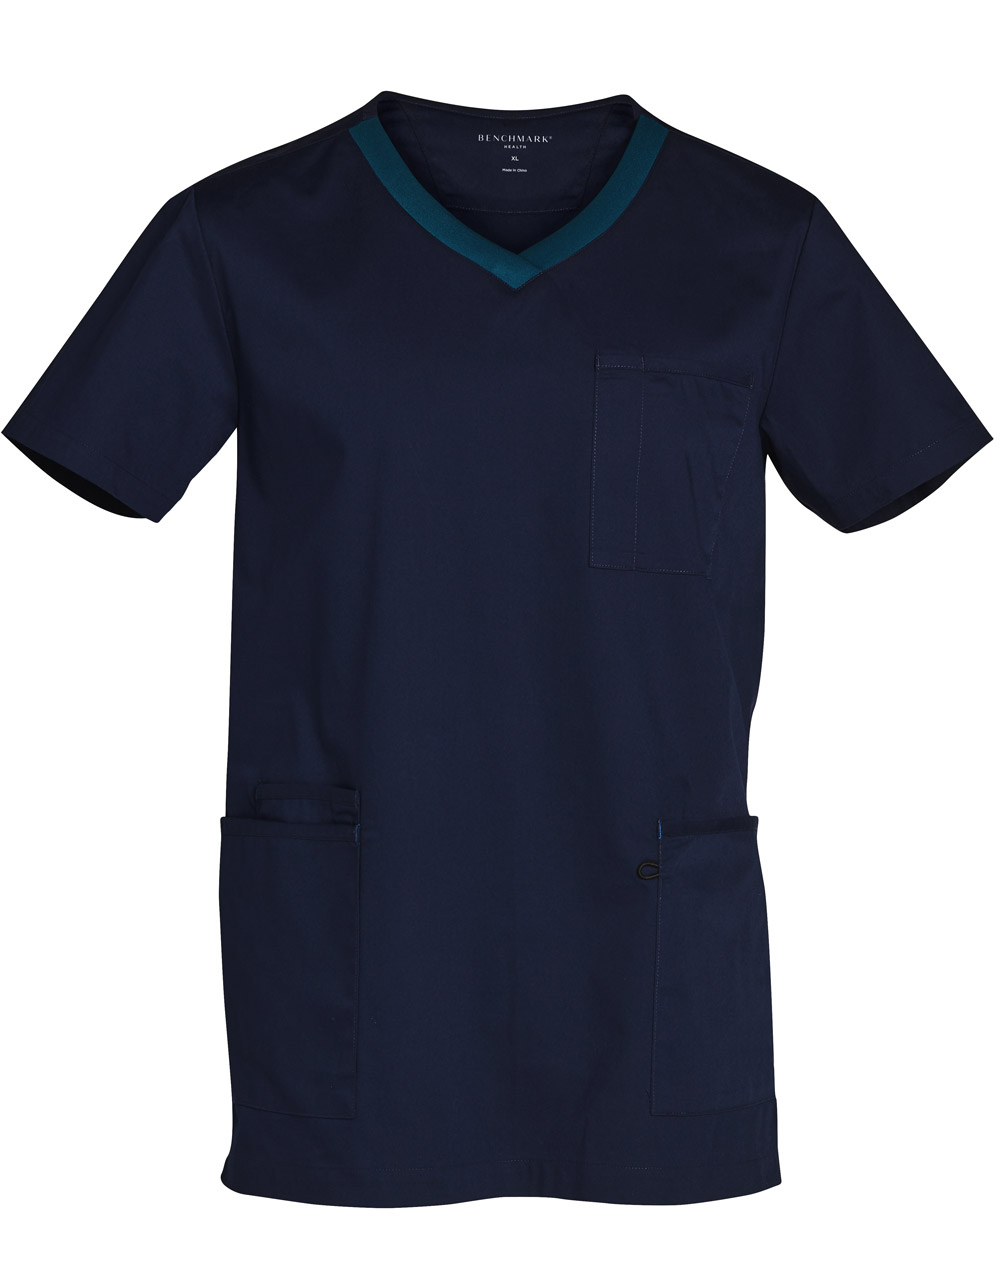 Get Navy-Teal Mens v-Neck Contrast Trim Scrub Tops in Australia